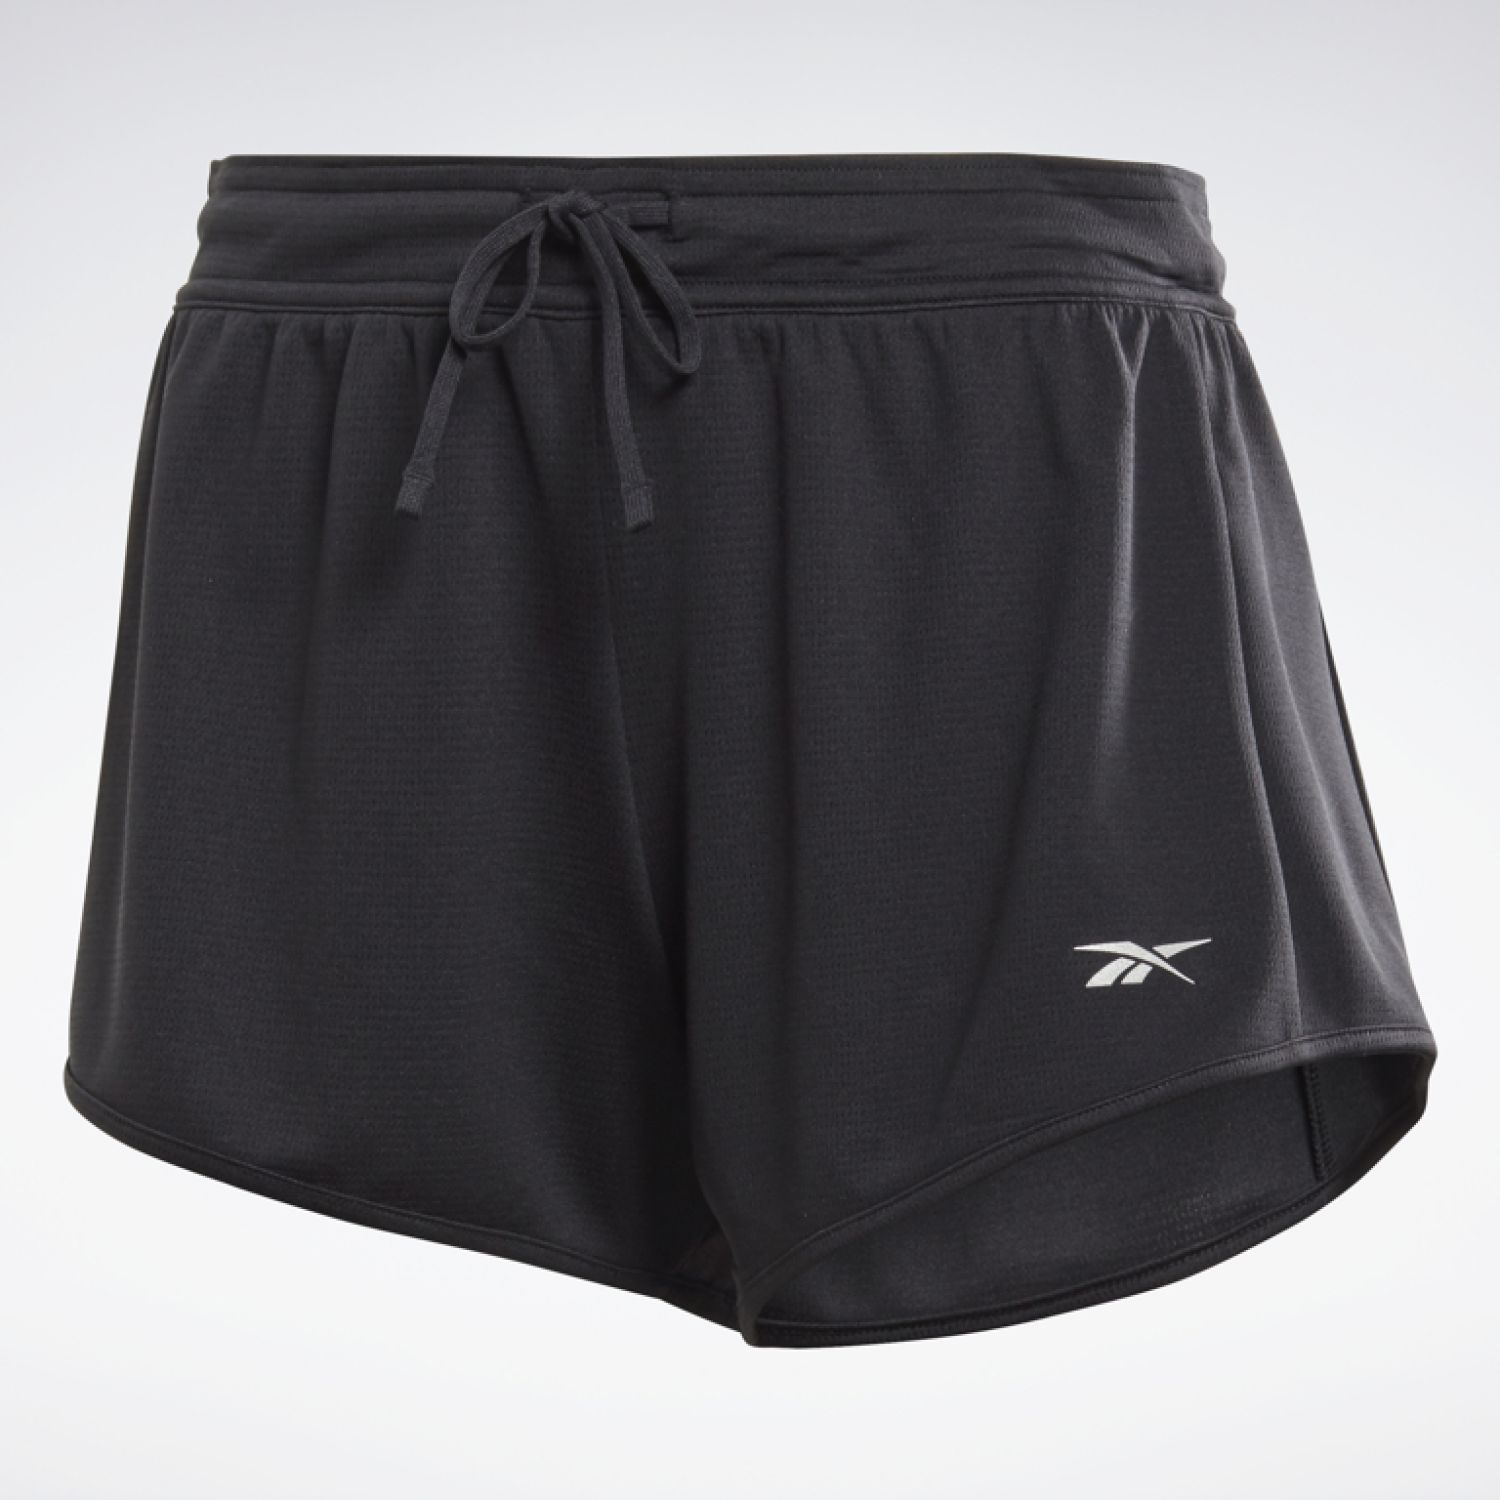 Reebok Re Basic 2in Short Negro Shorts deportivos